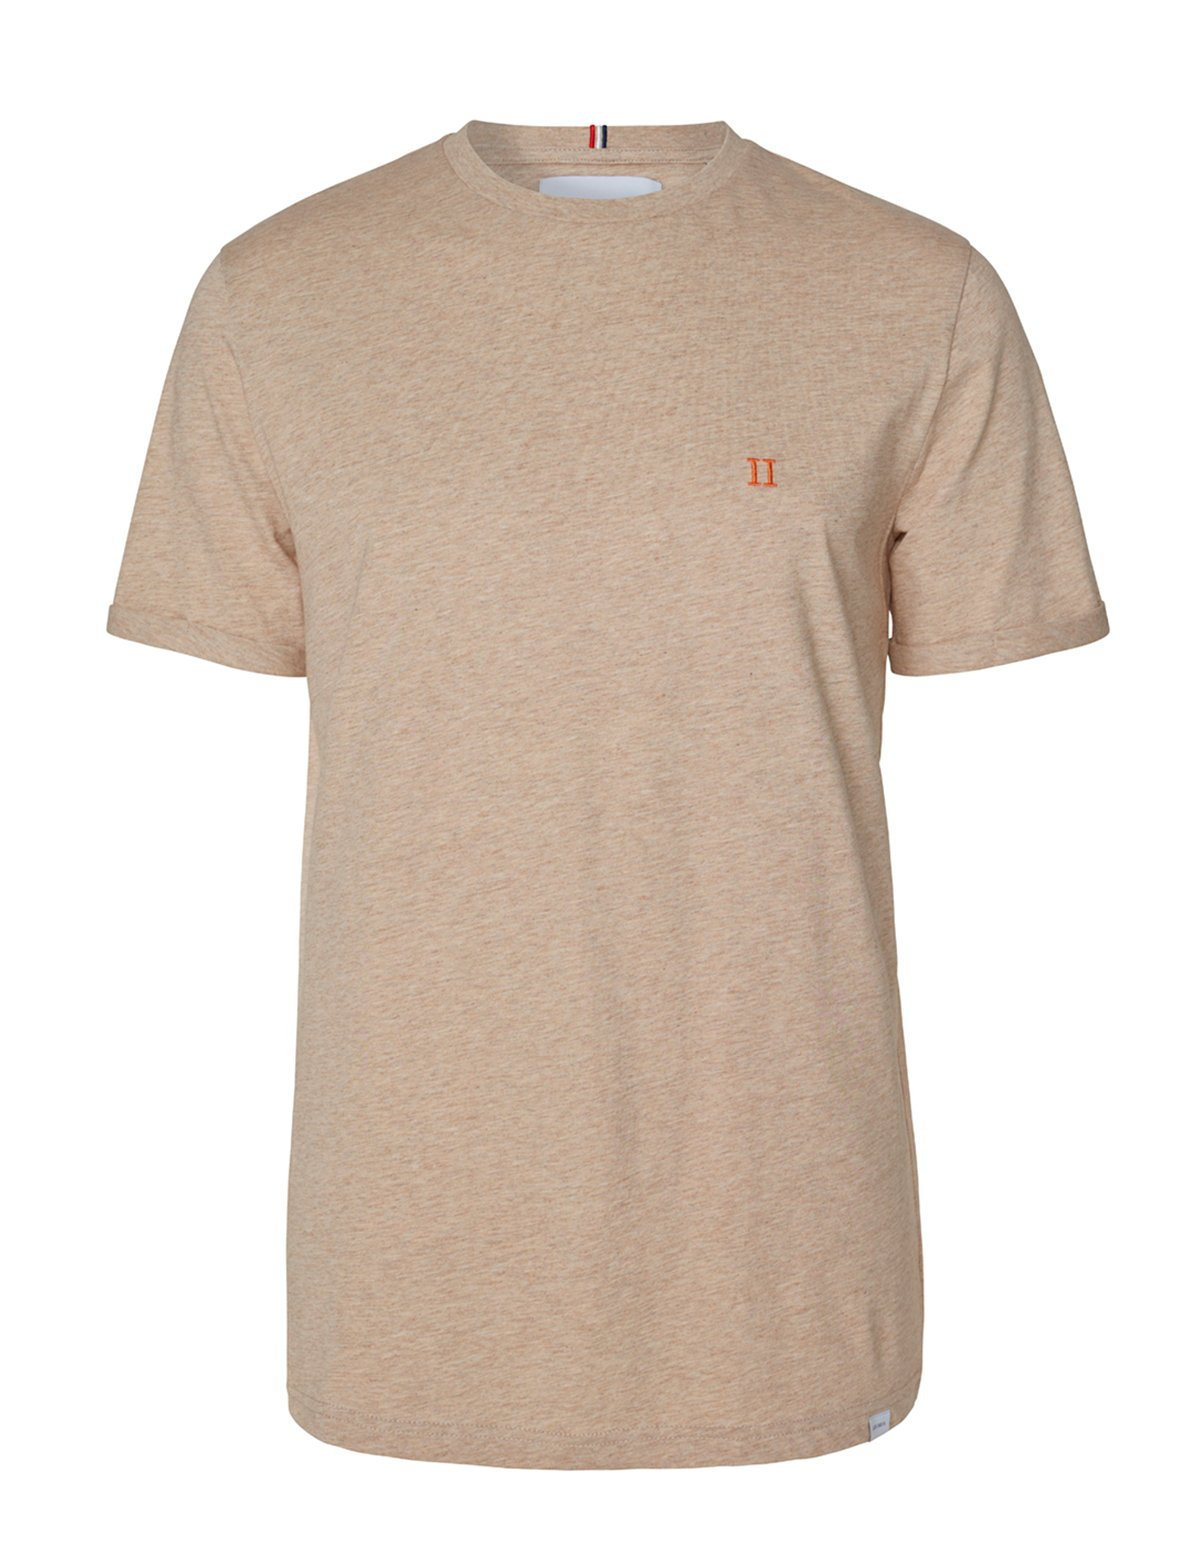 Les Deux Norregaard T-shirt Light Brown Melange/Orange